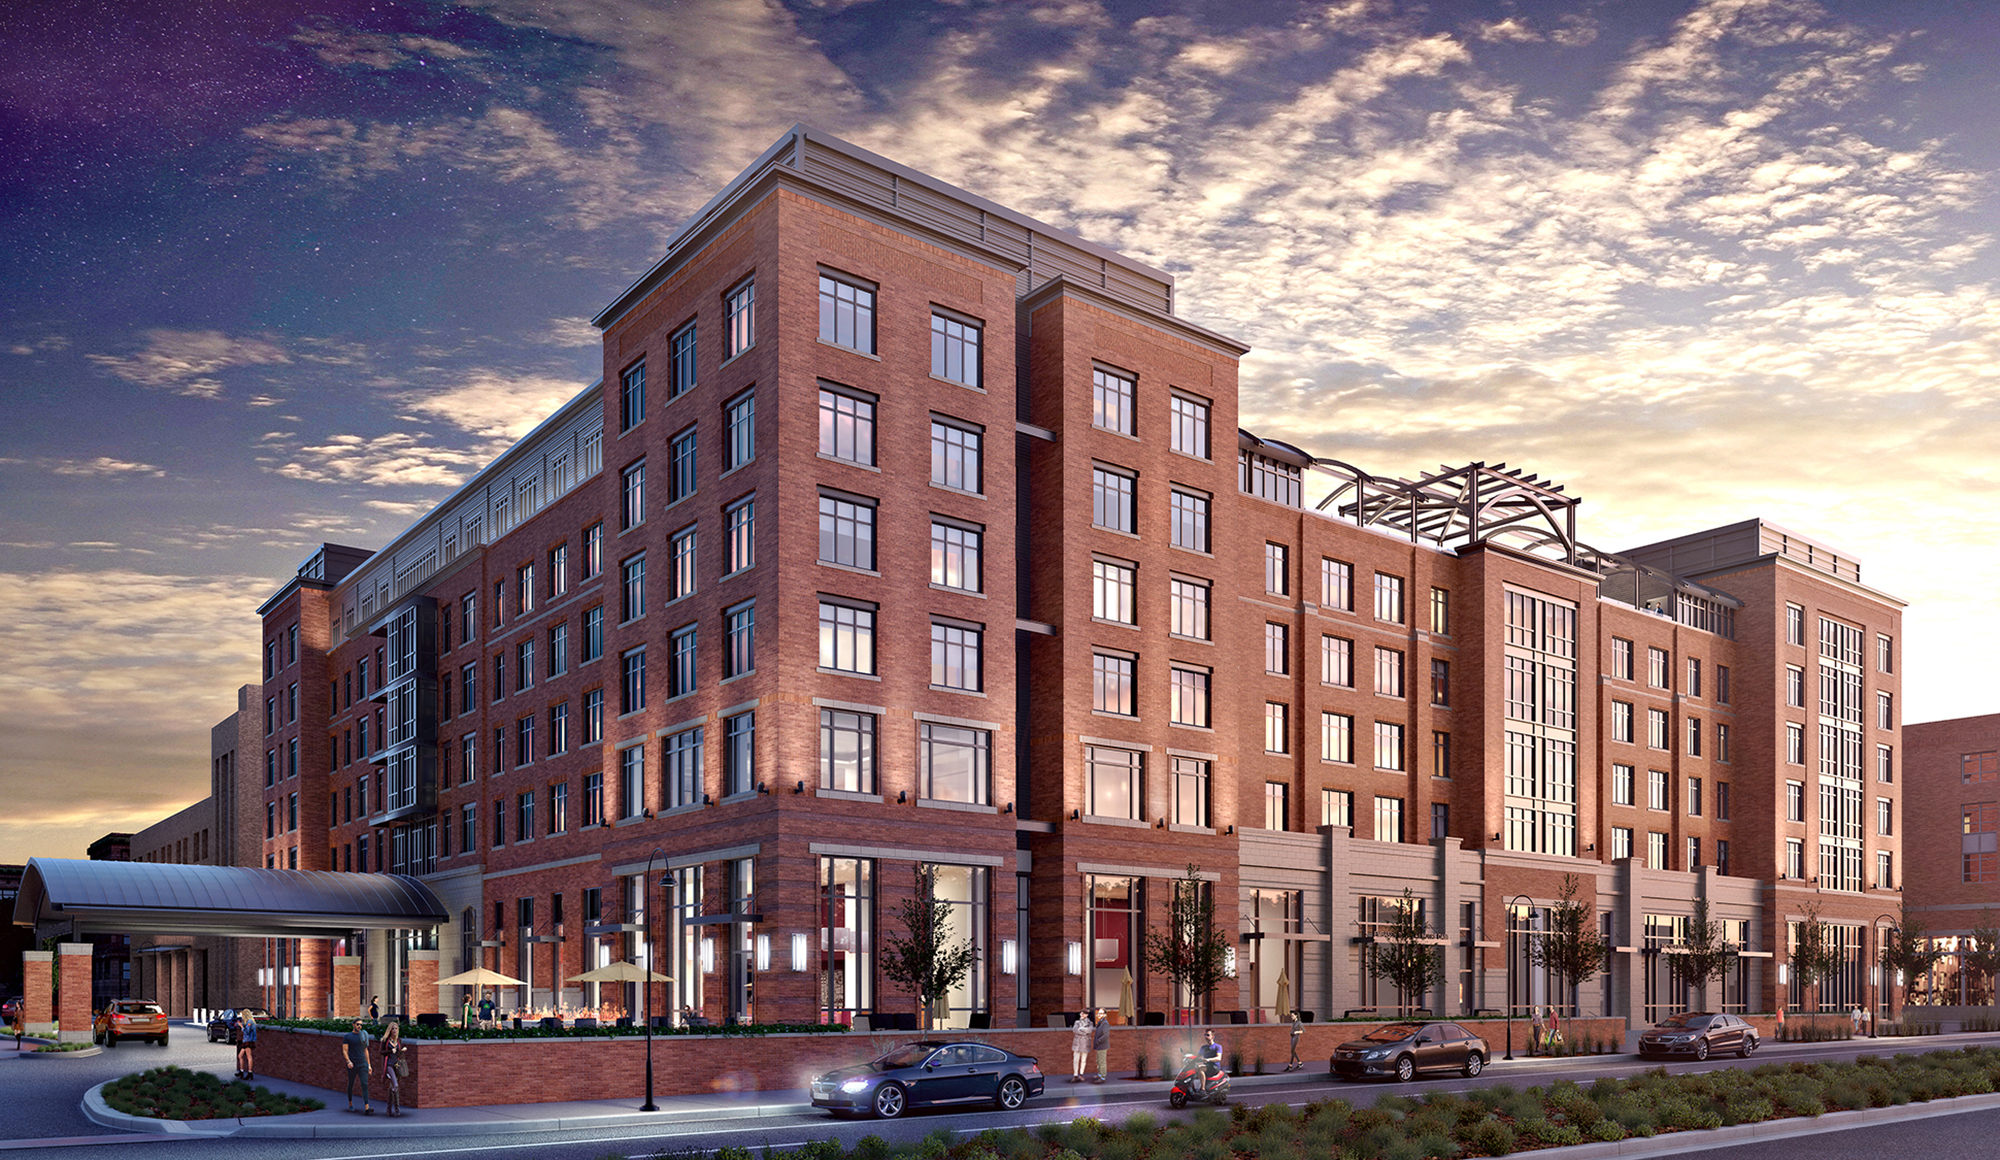 Embassy Suites Hotel - Opening Fall 2018